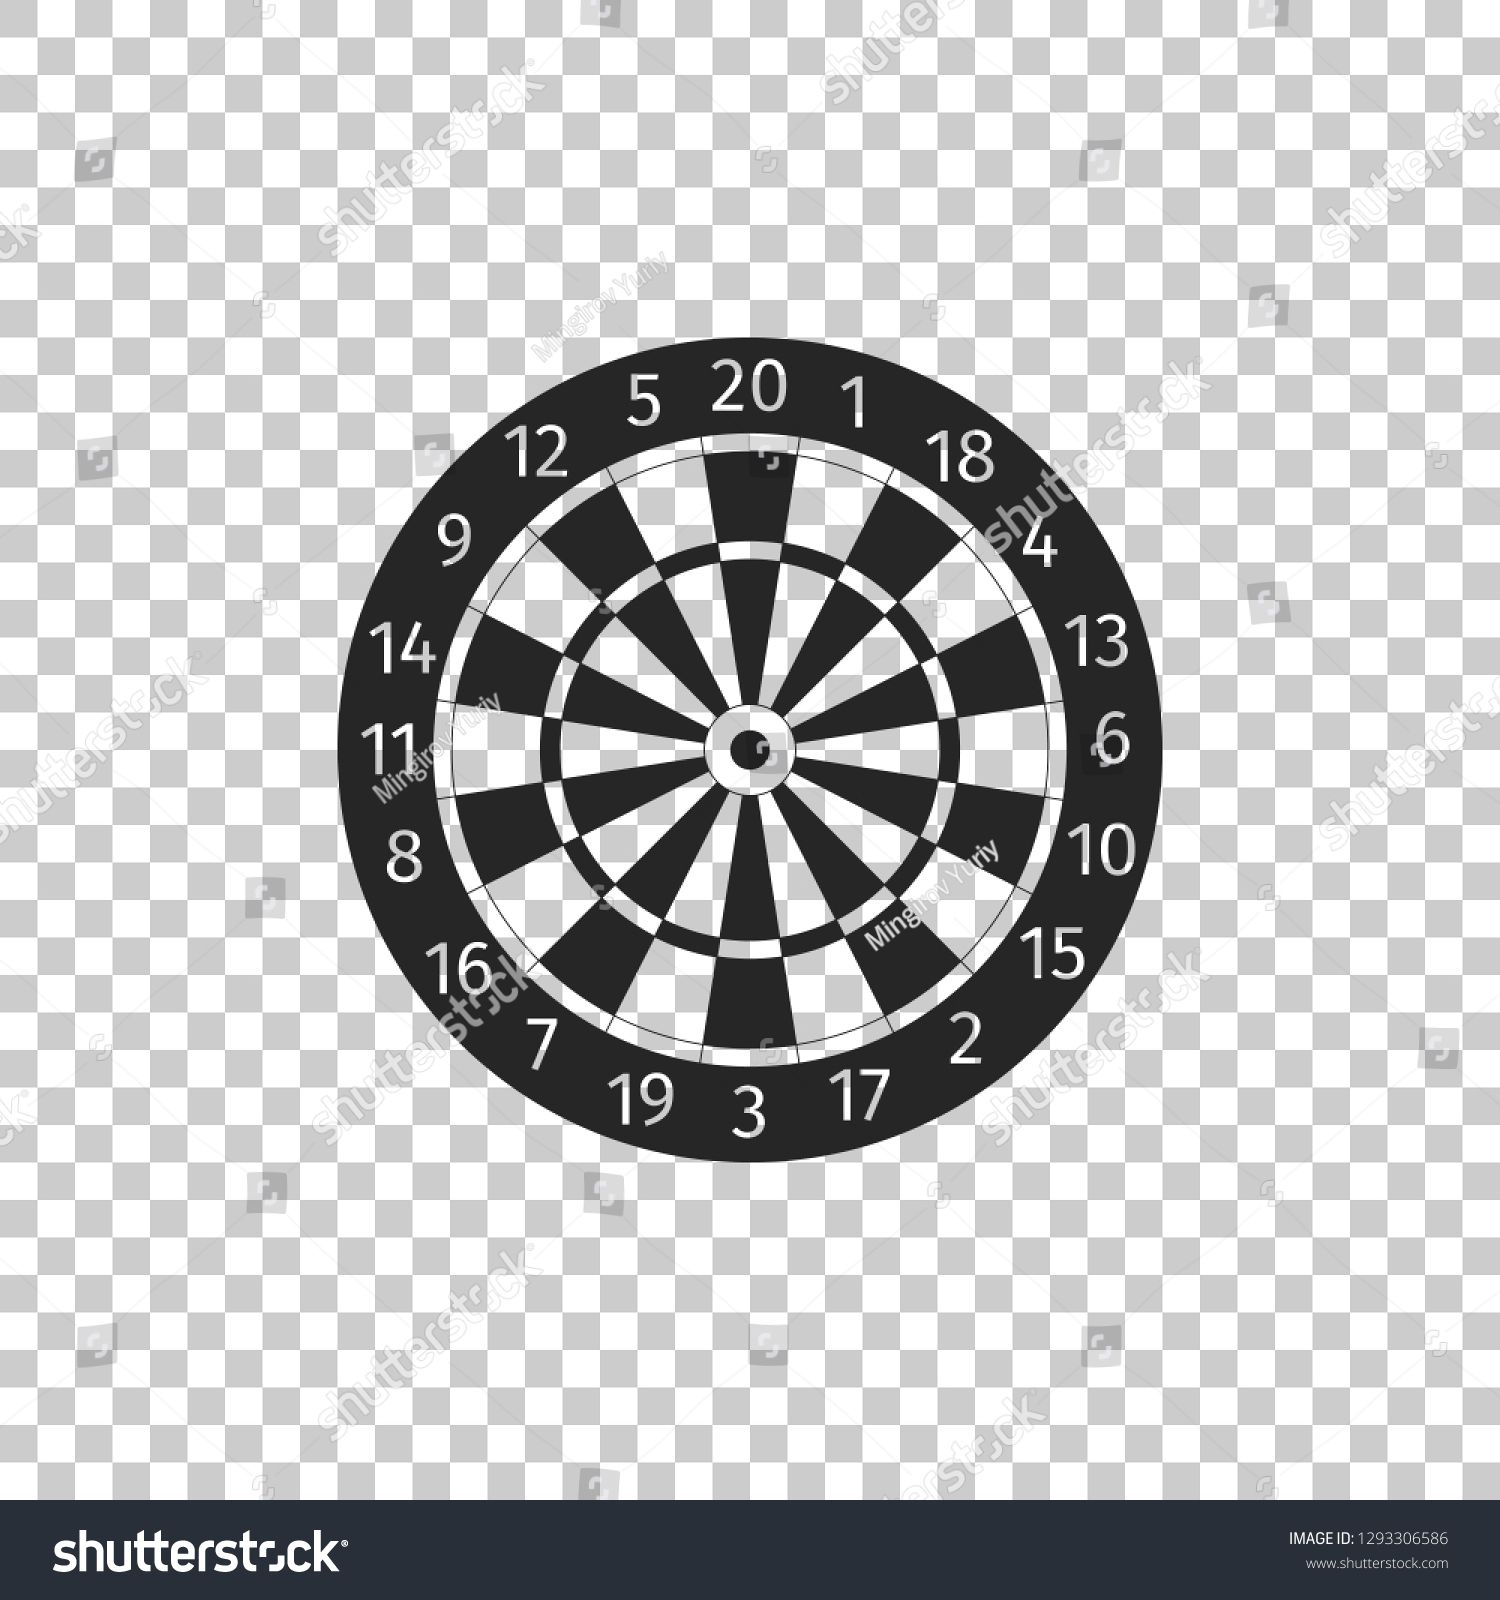 Classic Darts Board With Twenty Black And White Sectors Icon Isolated On Transparent Background Dart Graphic Design Logo Modern Graphic Design Black And White